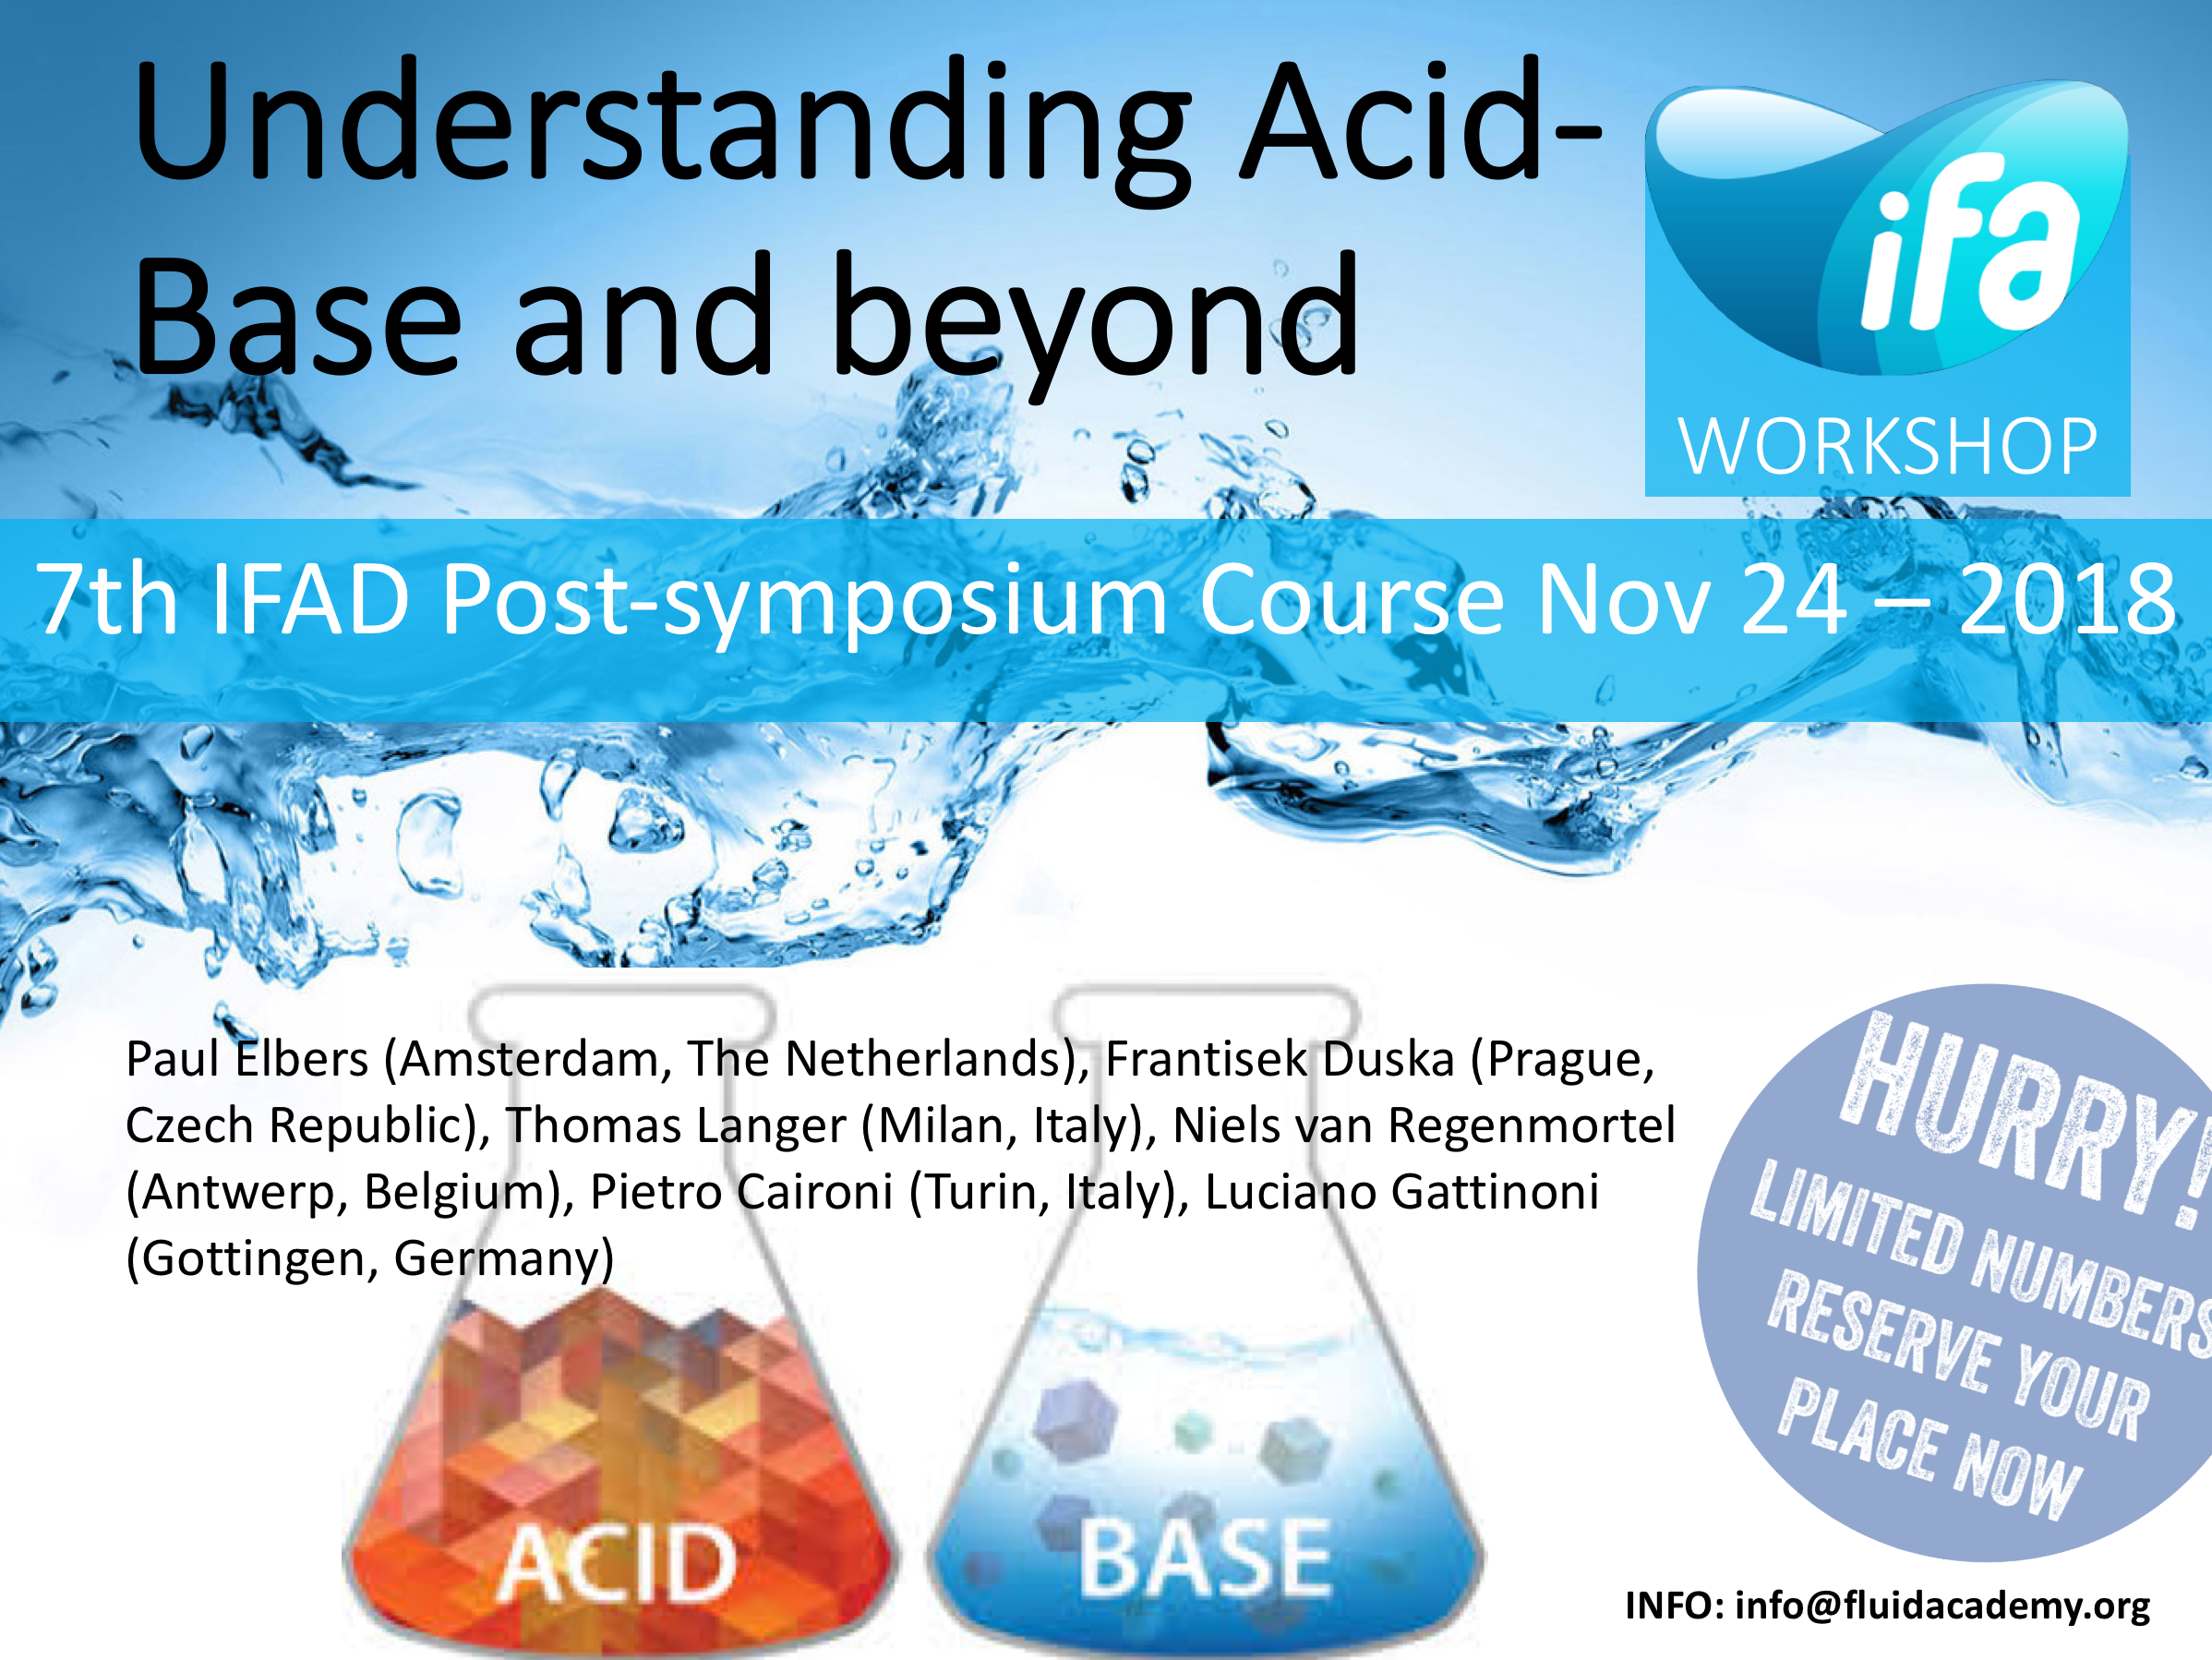 1st Acid-Base course